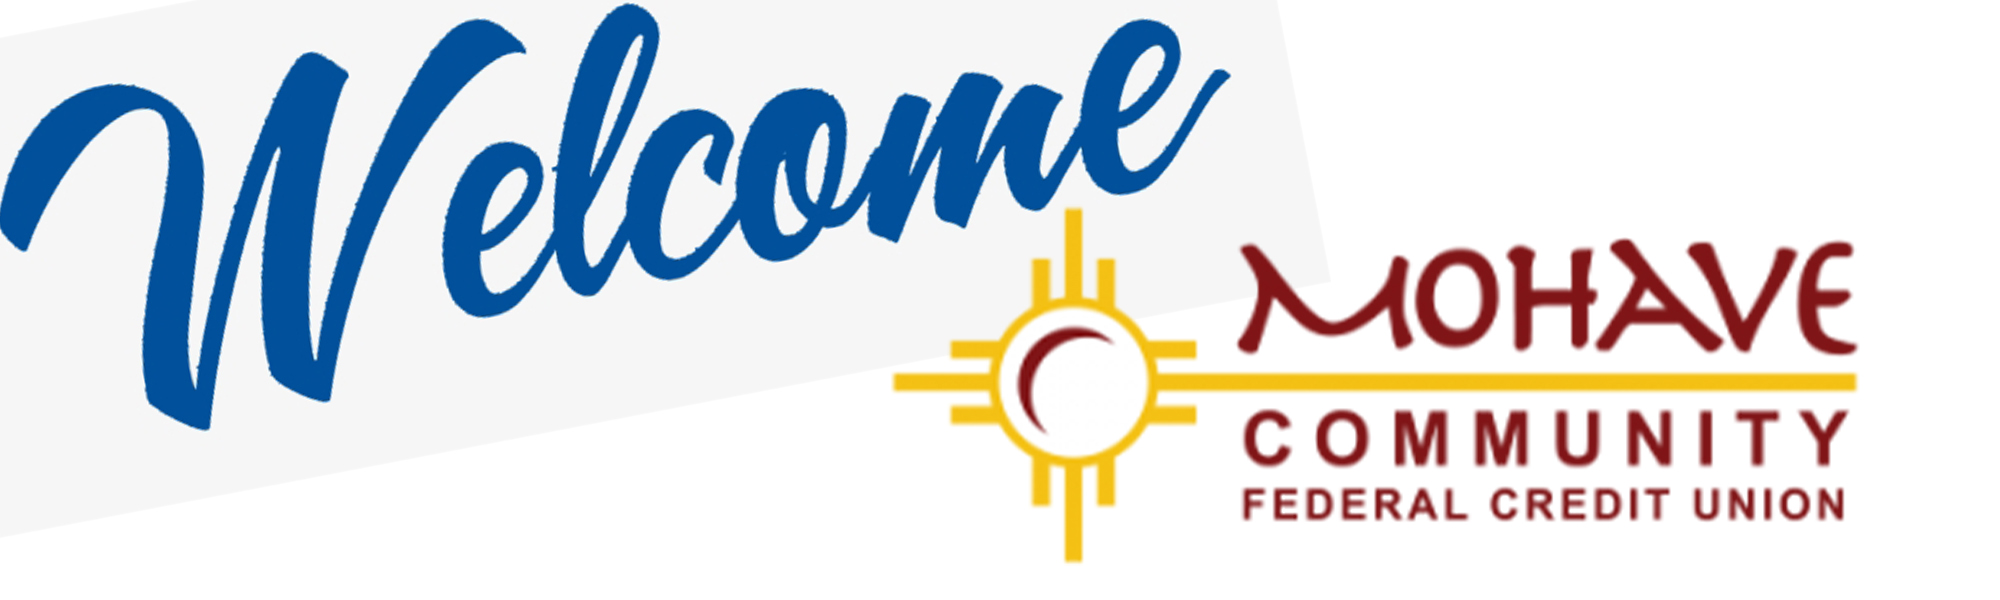 Welcome to Mohave Community Federal Credit Union